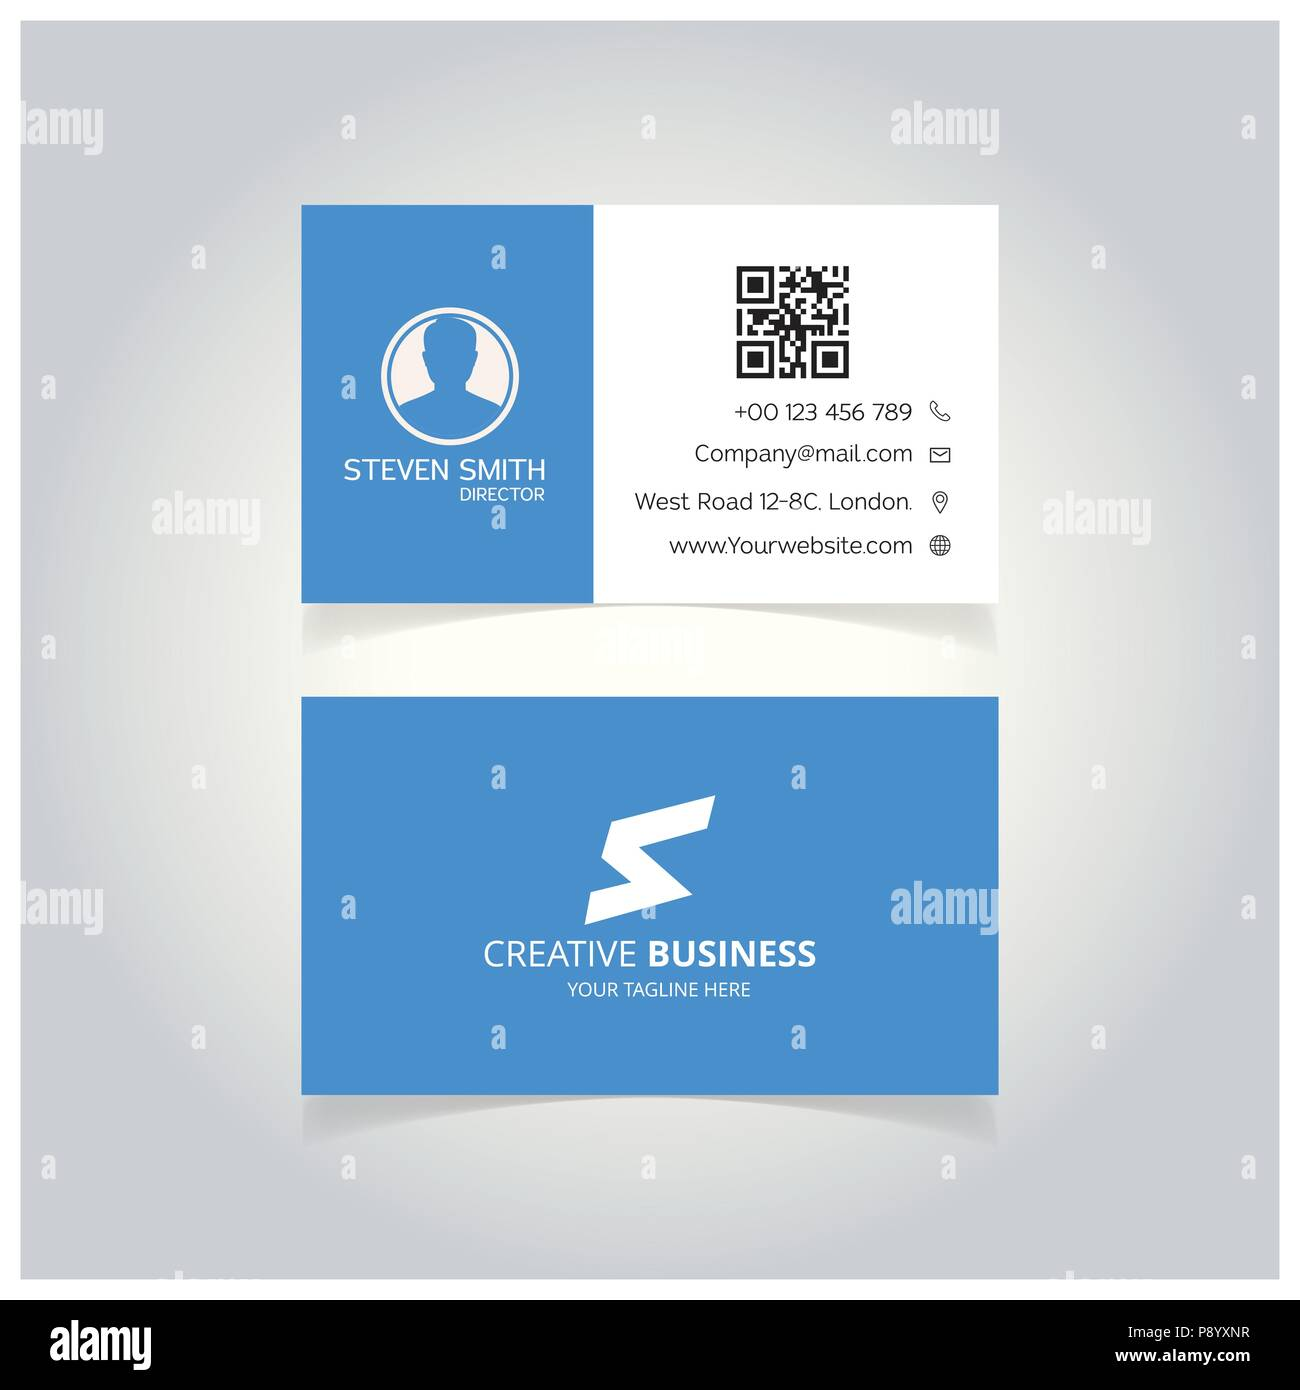 S letter logo minimal corporate business card with white and blue s letter logo minimal corporate business card with white and blue color for web design and application interface also useful for infographics vecto reheart Choice Image